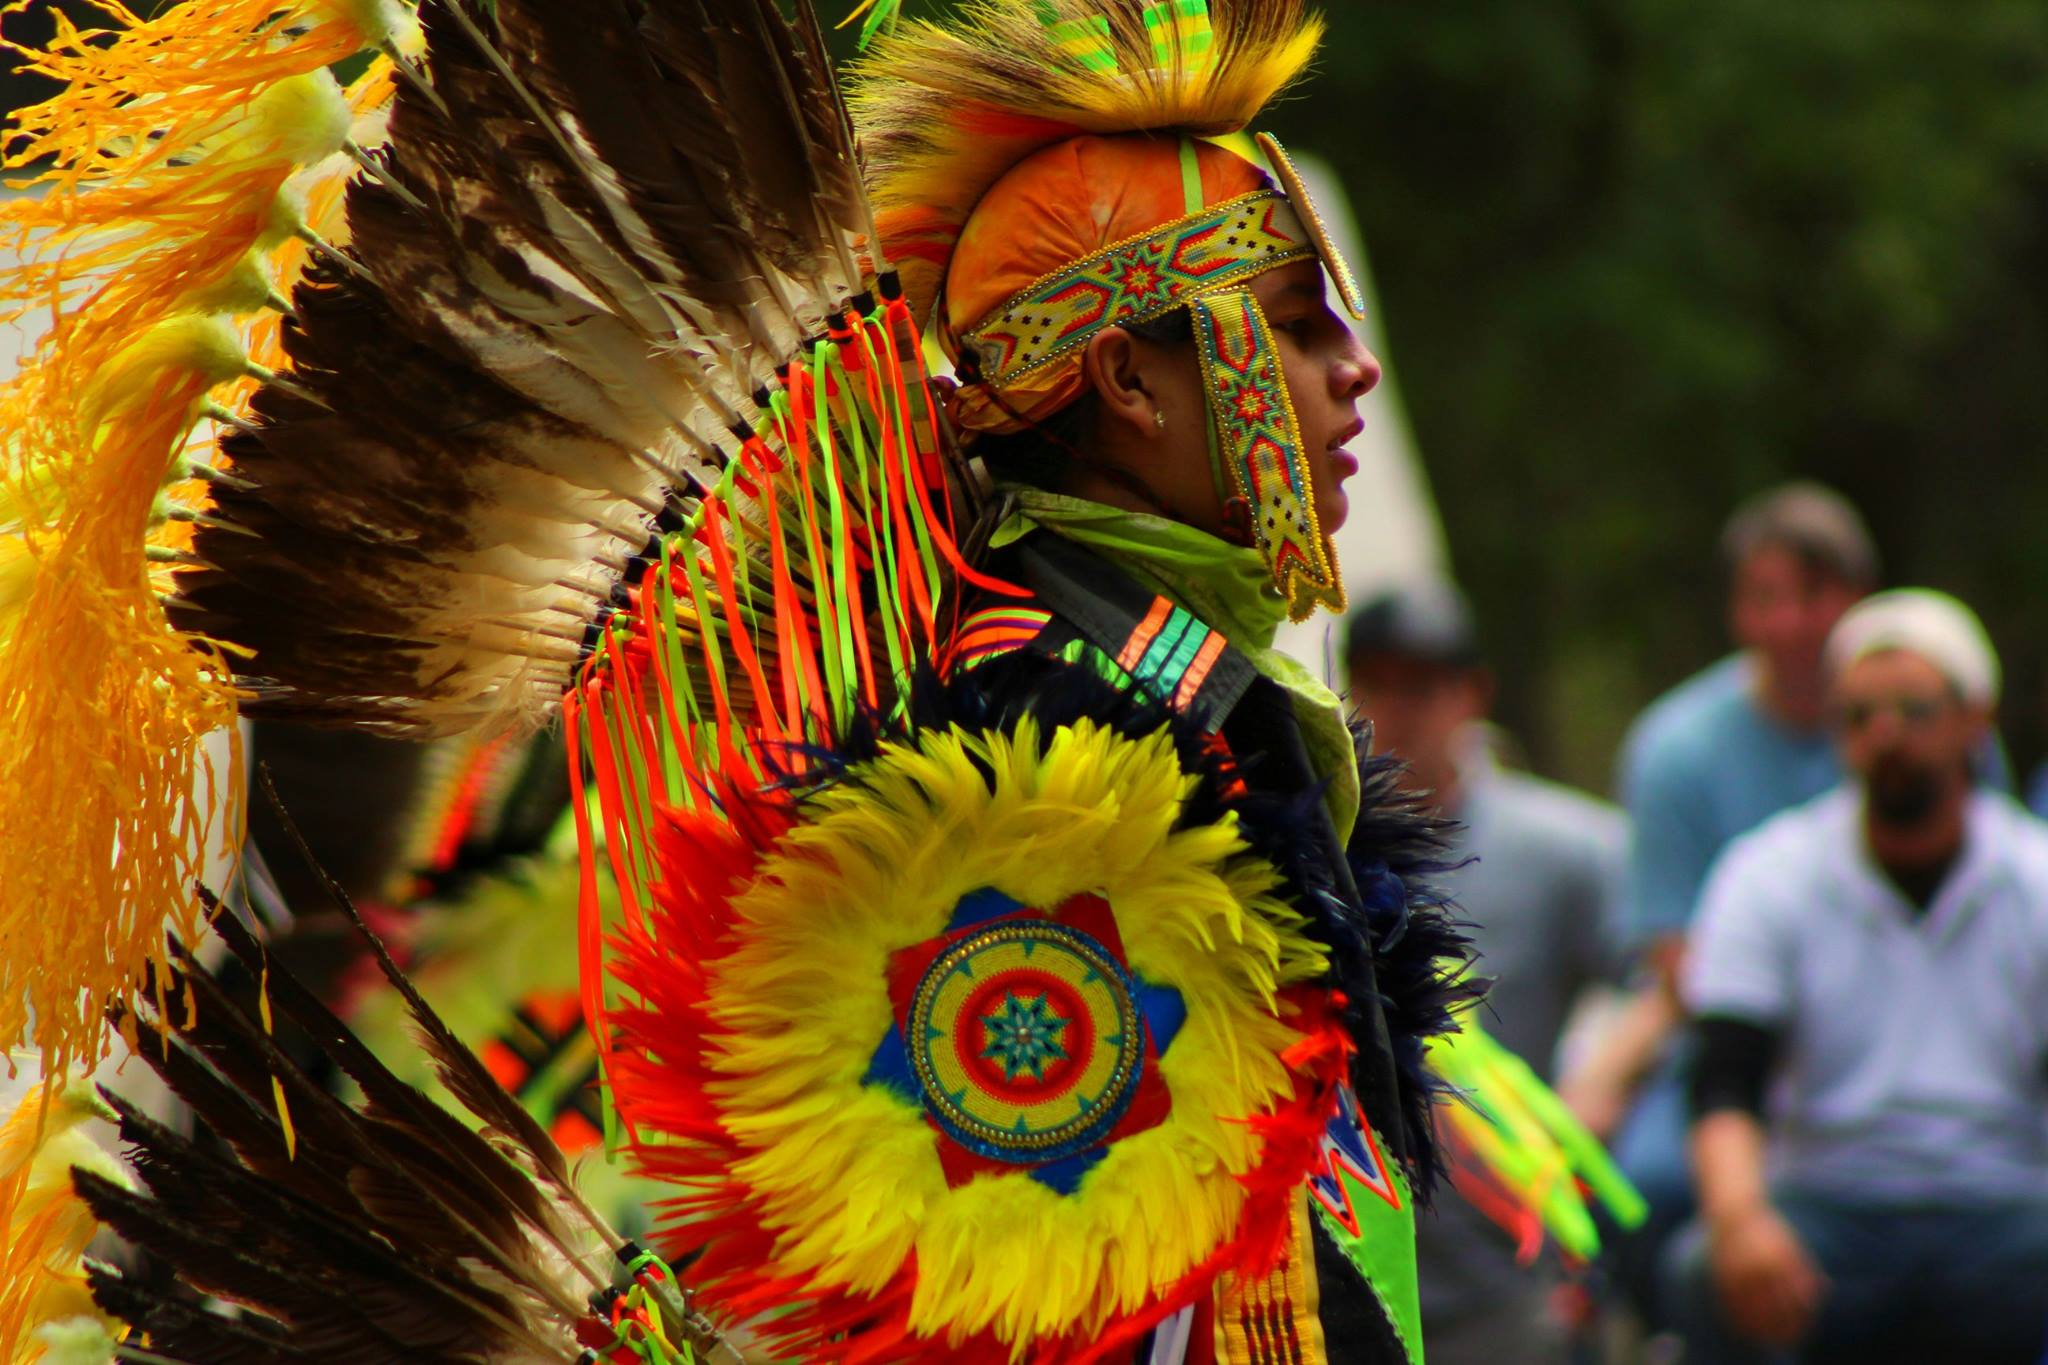 Native American Festival at Chehaw 2018